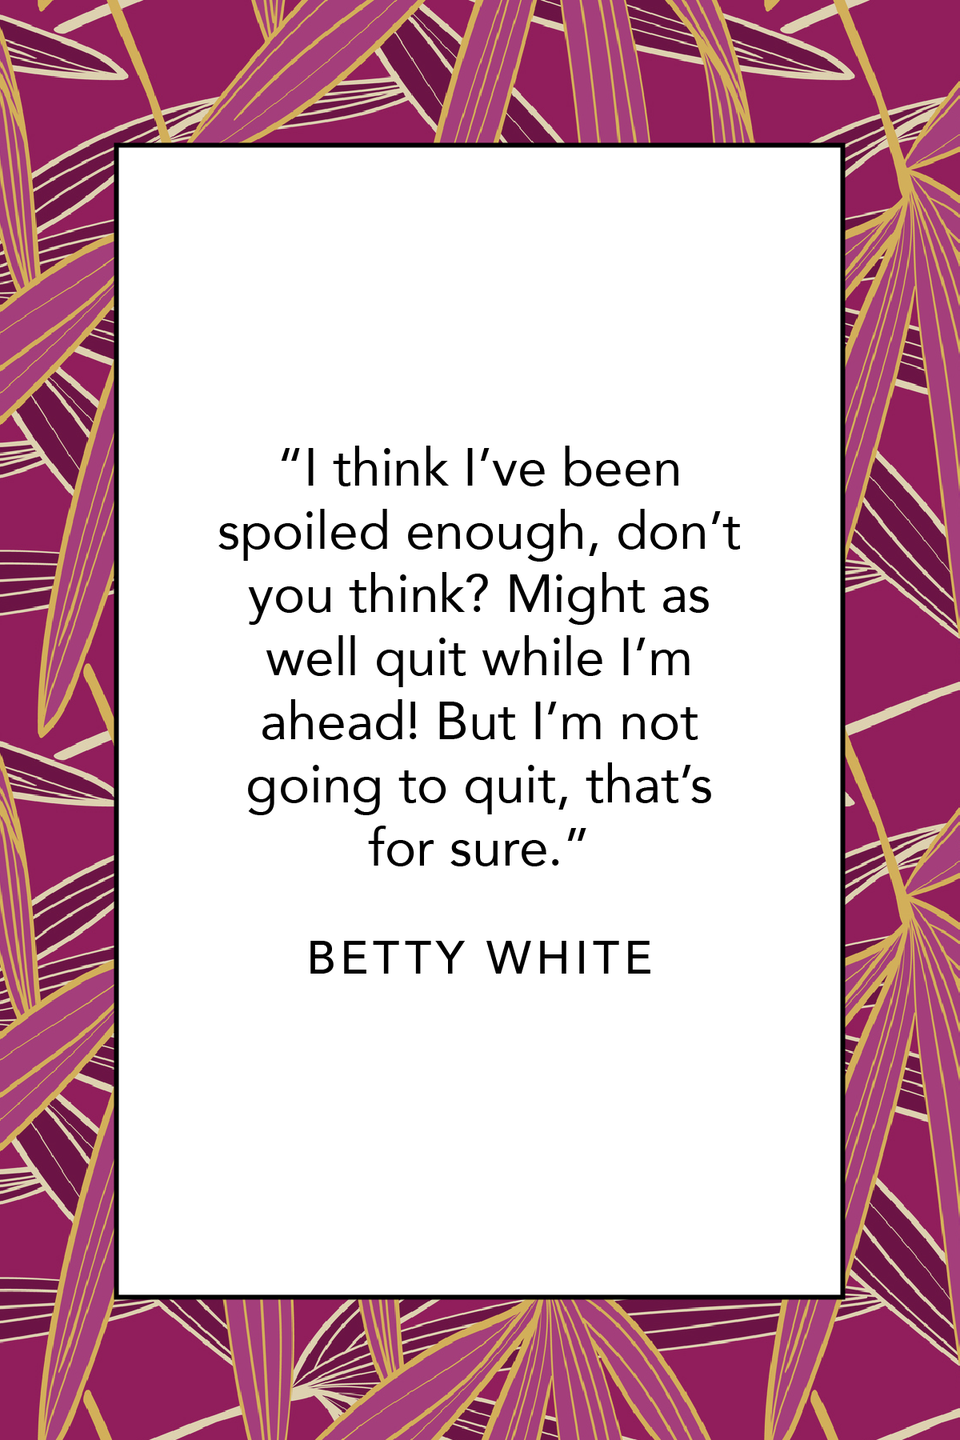 """<p>Betty White spoke humbly about all of her good fortunes in a 2012 <em><a href=""""https://www.huffpost.com/entry/betty-white-gay-marriage-obama_n_1591477"""" data-ylk=""""slk:Huffington Post"""" class=""""link rapid-noclick-resp"""">Huffington Post</a></em> interview. """"I think I've been spoiled enough, don't you think? Might as well quit while I'm ahead! But I'm not going to quit, that's for sure.""""</p>"""